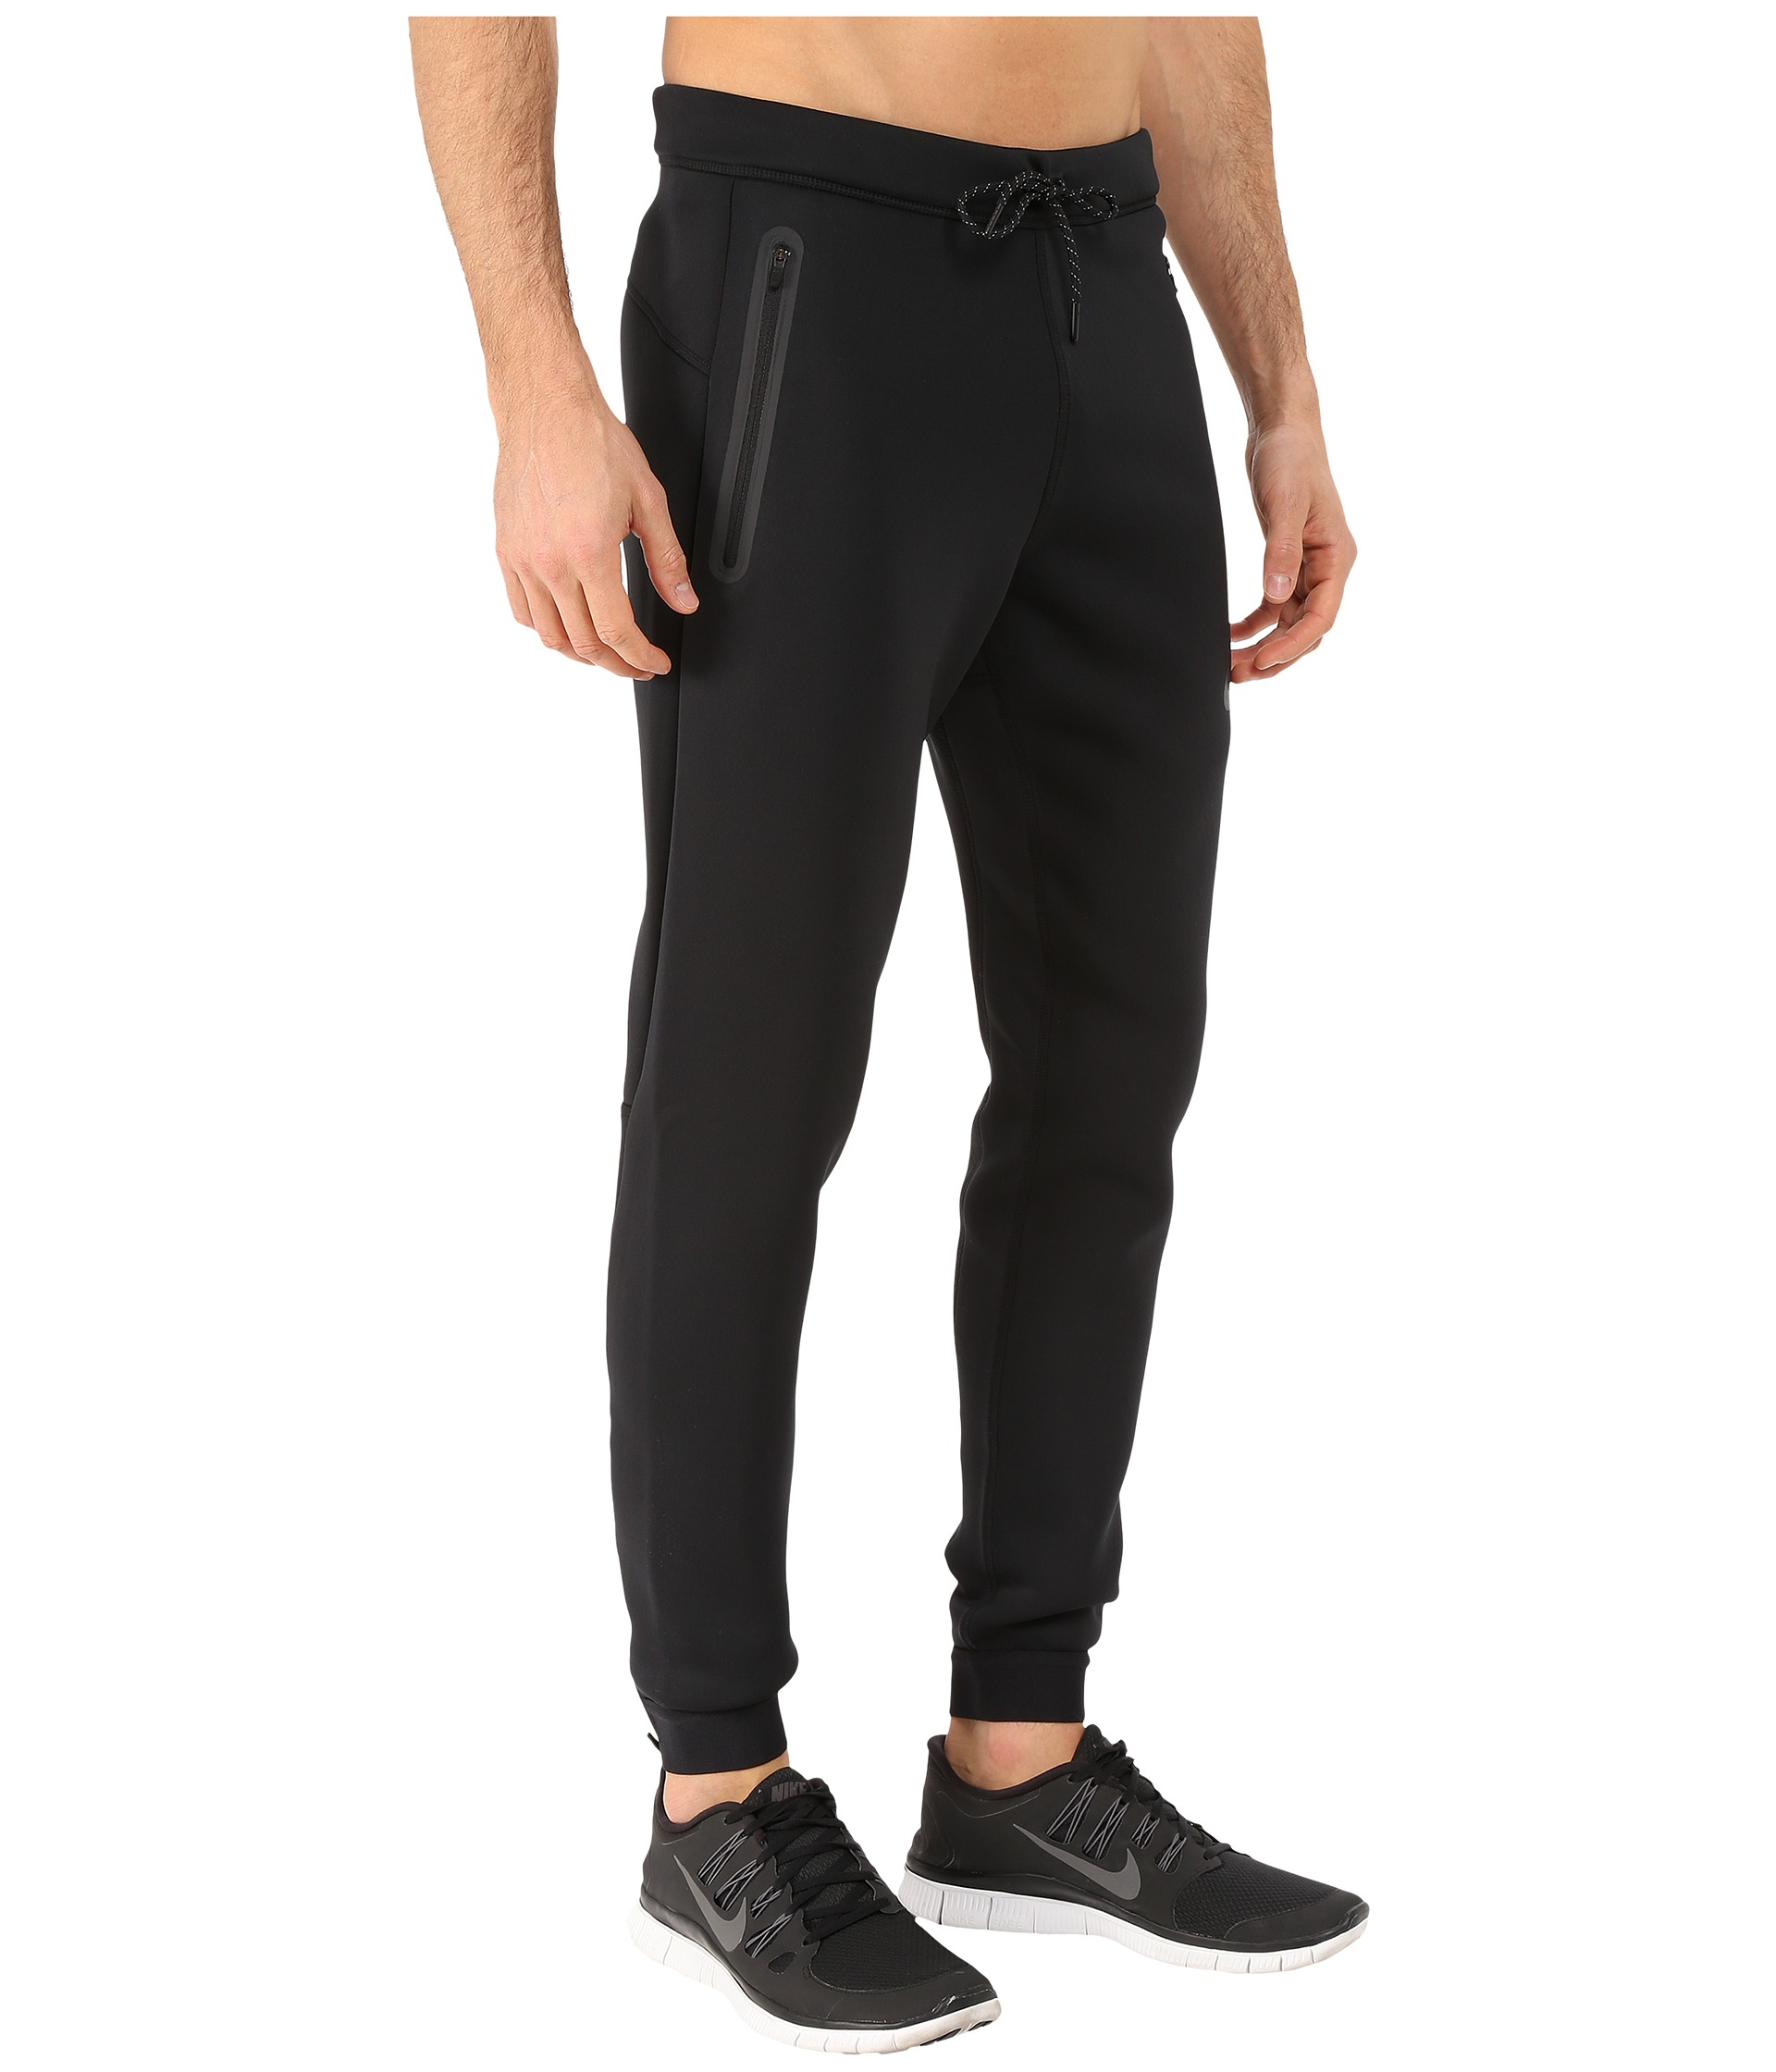 f05f1384900d Lyst - Nike Tech Thermasphere Max Pants in Black for Men